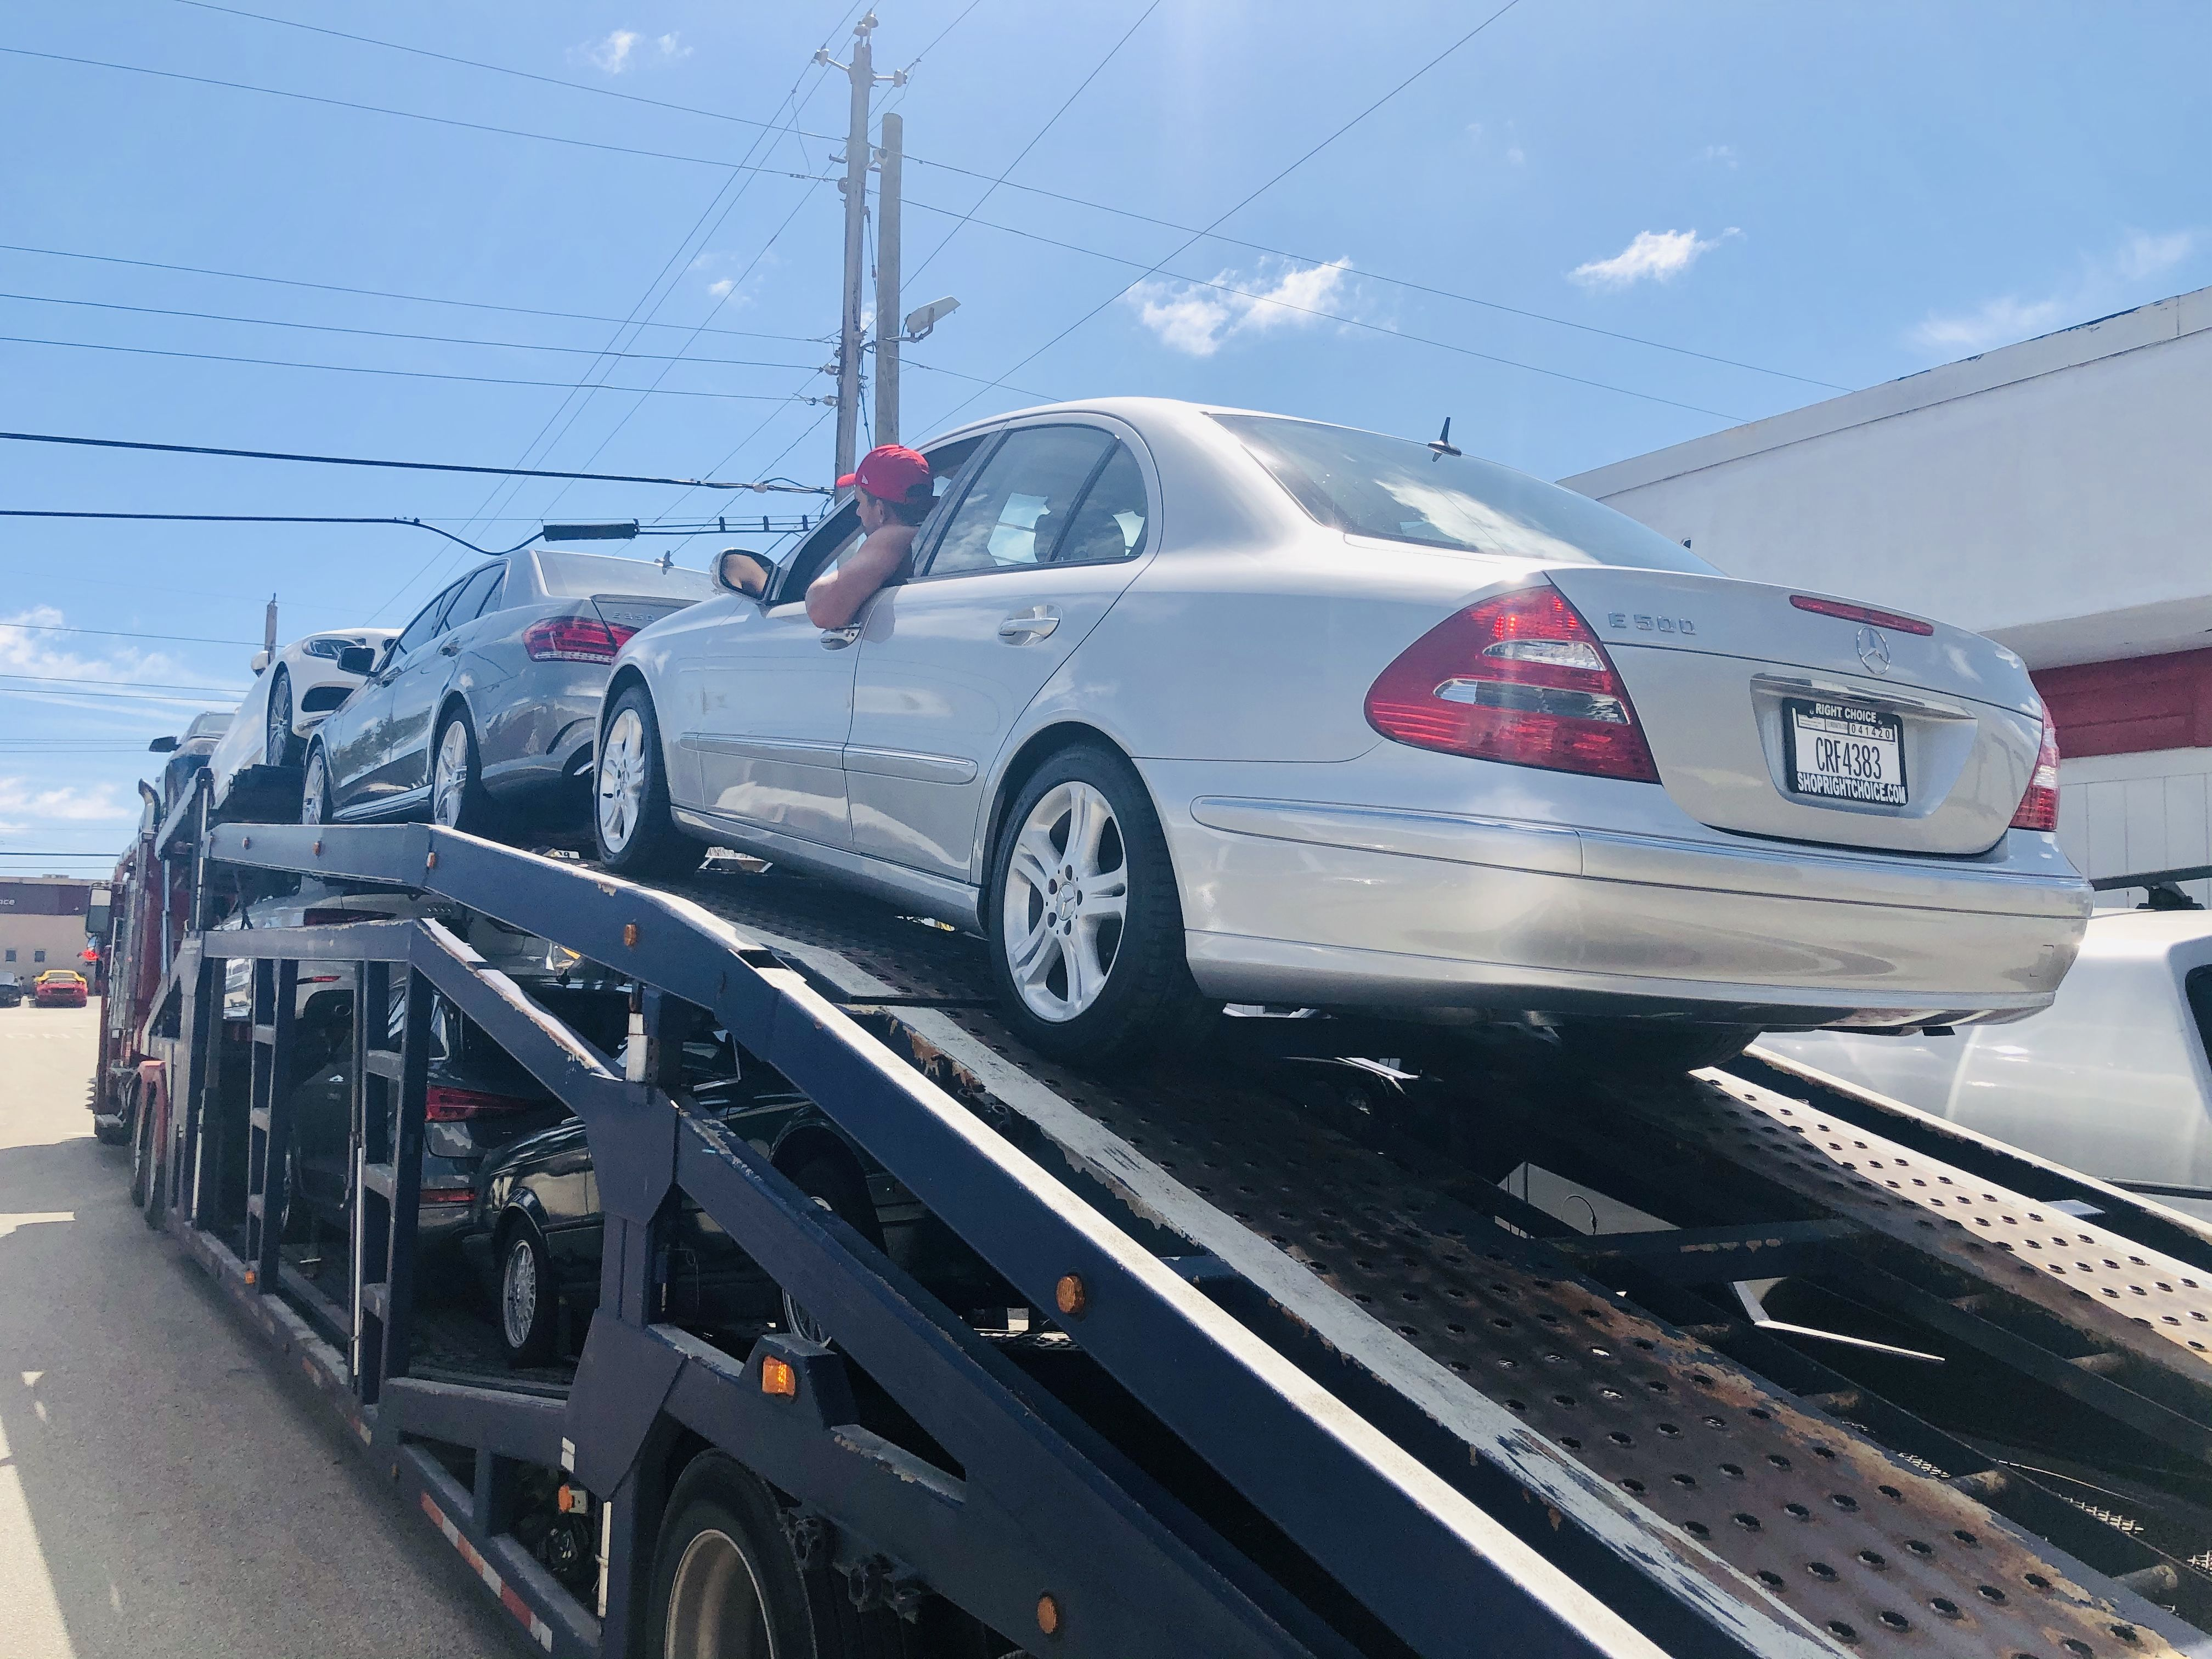 Another smart car buyer who bought from home!  Right Choice Auto Sales in Pompano Beach, FL, is delivering this 2004 Mercedes-Benz E500 to Spring Branch, TX!  SHOPRIGHTCHOICE.COM for a great deal on your next car!   #MercedesBenz #E500 #RightChoiceAutoSales #WeDeliverUsedCars #GreatDeals #BuyCarsFromHome #OnlineShopping #NationwideDelivery #MercedesBenzPompanoBeach #PompanoBeach #FloridaCars #UsedCars #CarsForSale #SouthFlorida #CarDealer